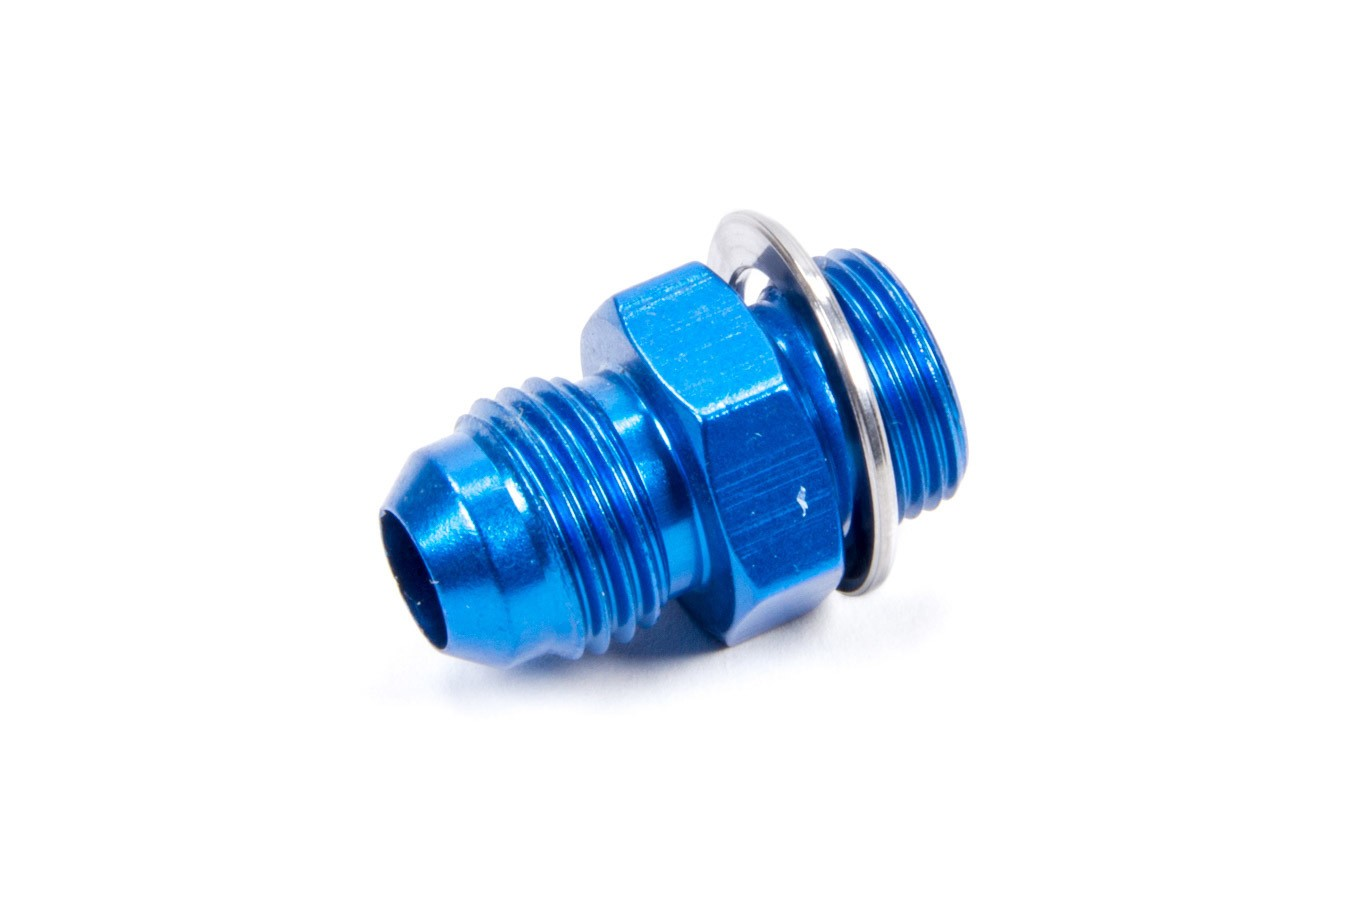 Fragola 491951 Fitting, Adapter, Straight, 6 AN Male to 9/16-24 in Male, Aluminum, Blue Anodize, Each